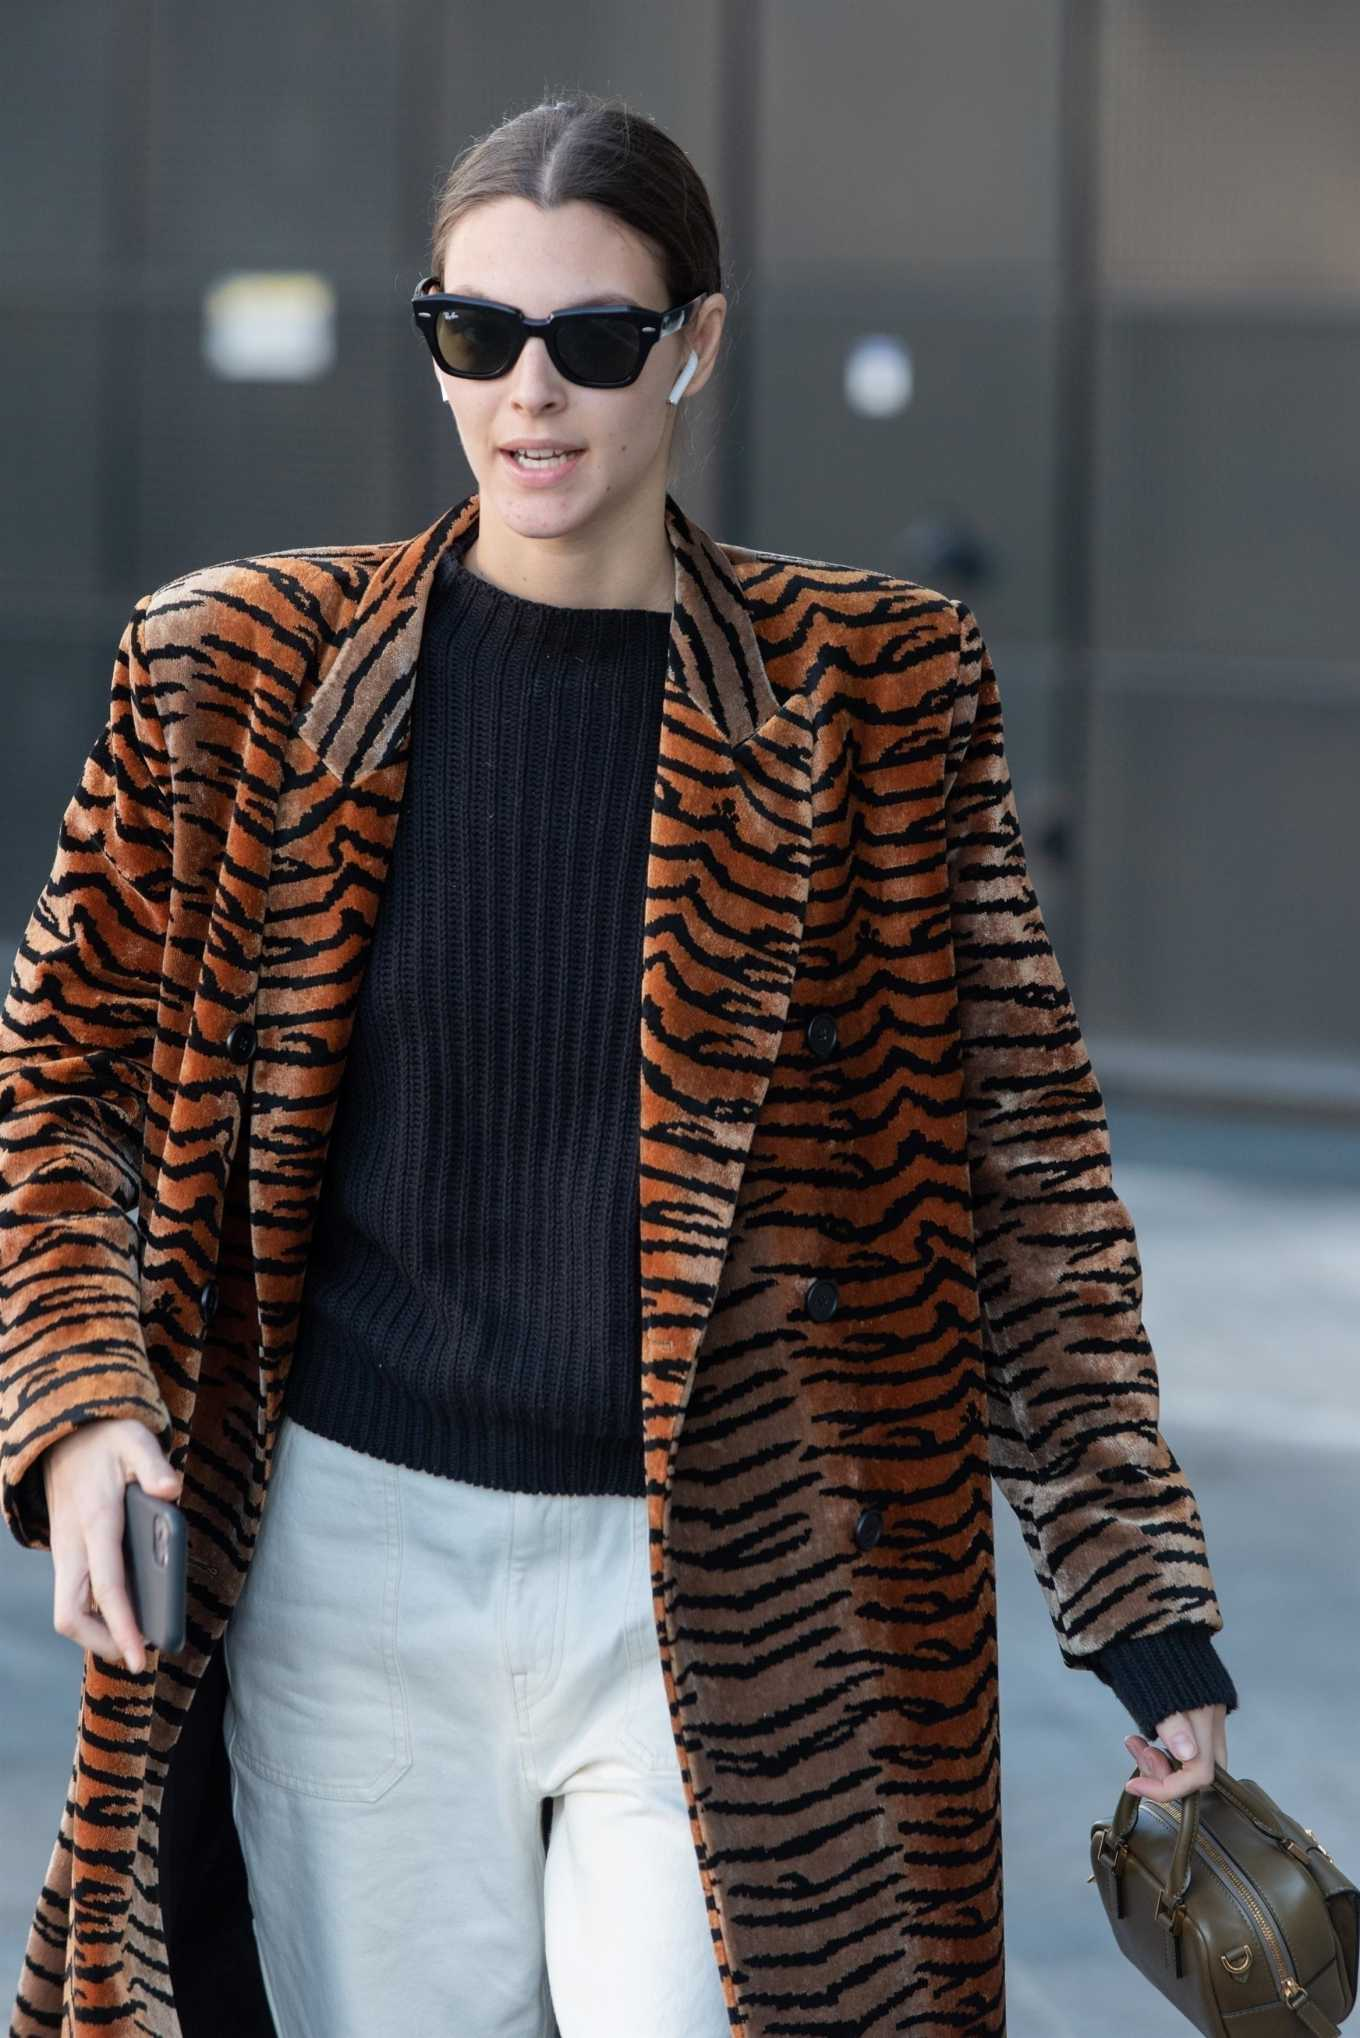 VITTORIA CERETTI Arrives at Versace Show at Milan Fashion Week